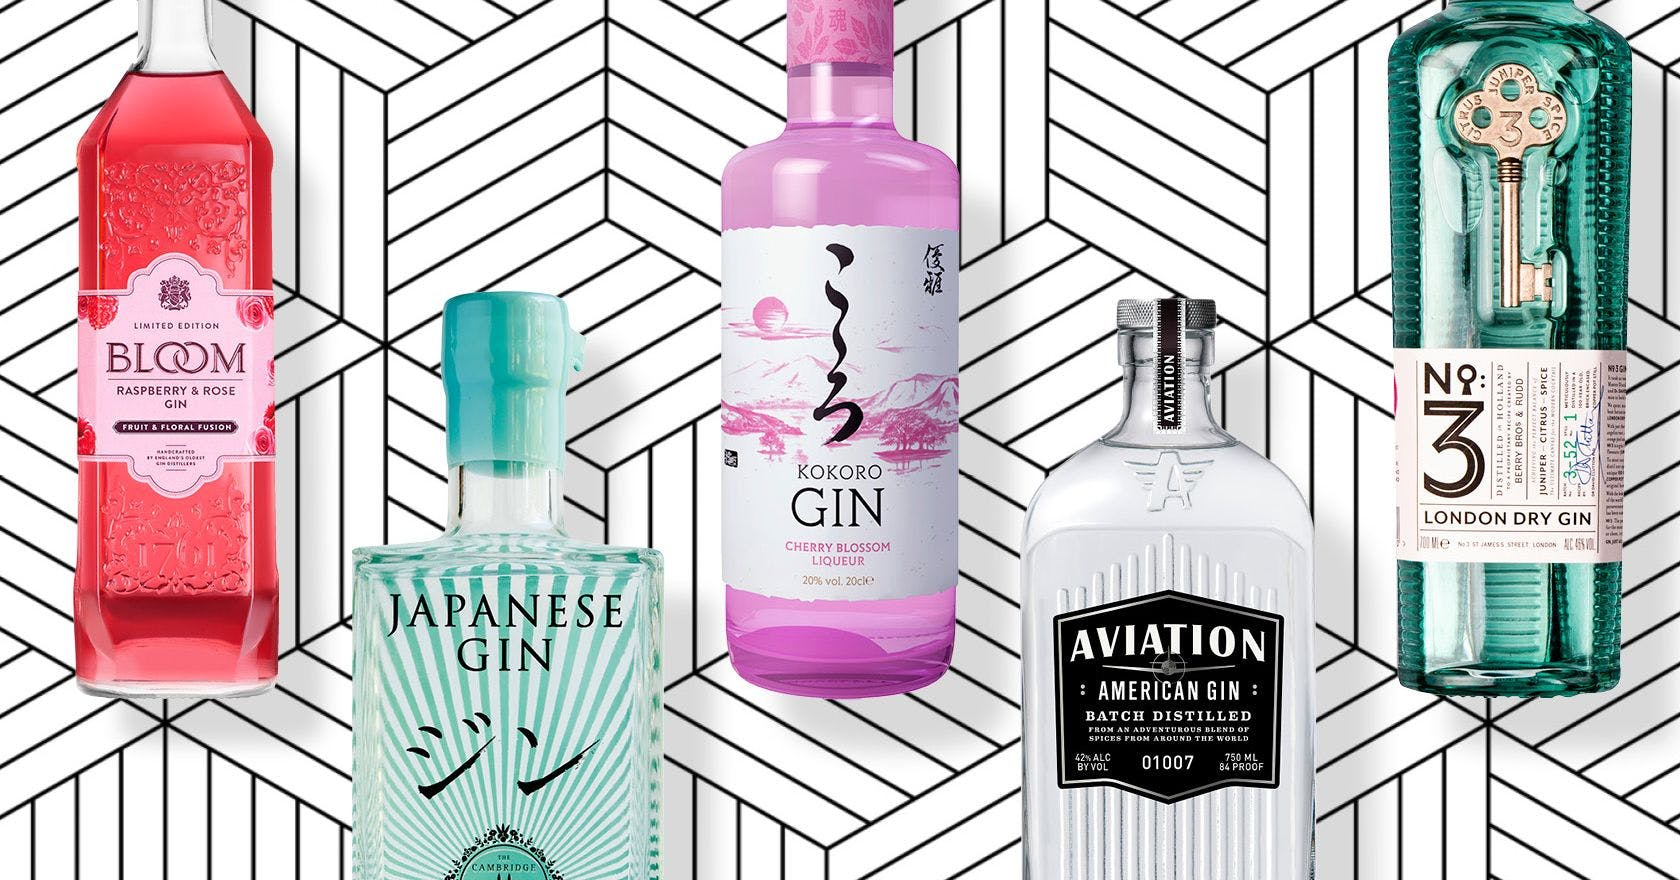 30 of the best gins (and low-alcohol stand-ins) reviewed by the Stylist team